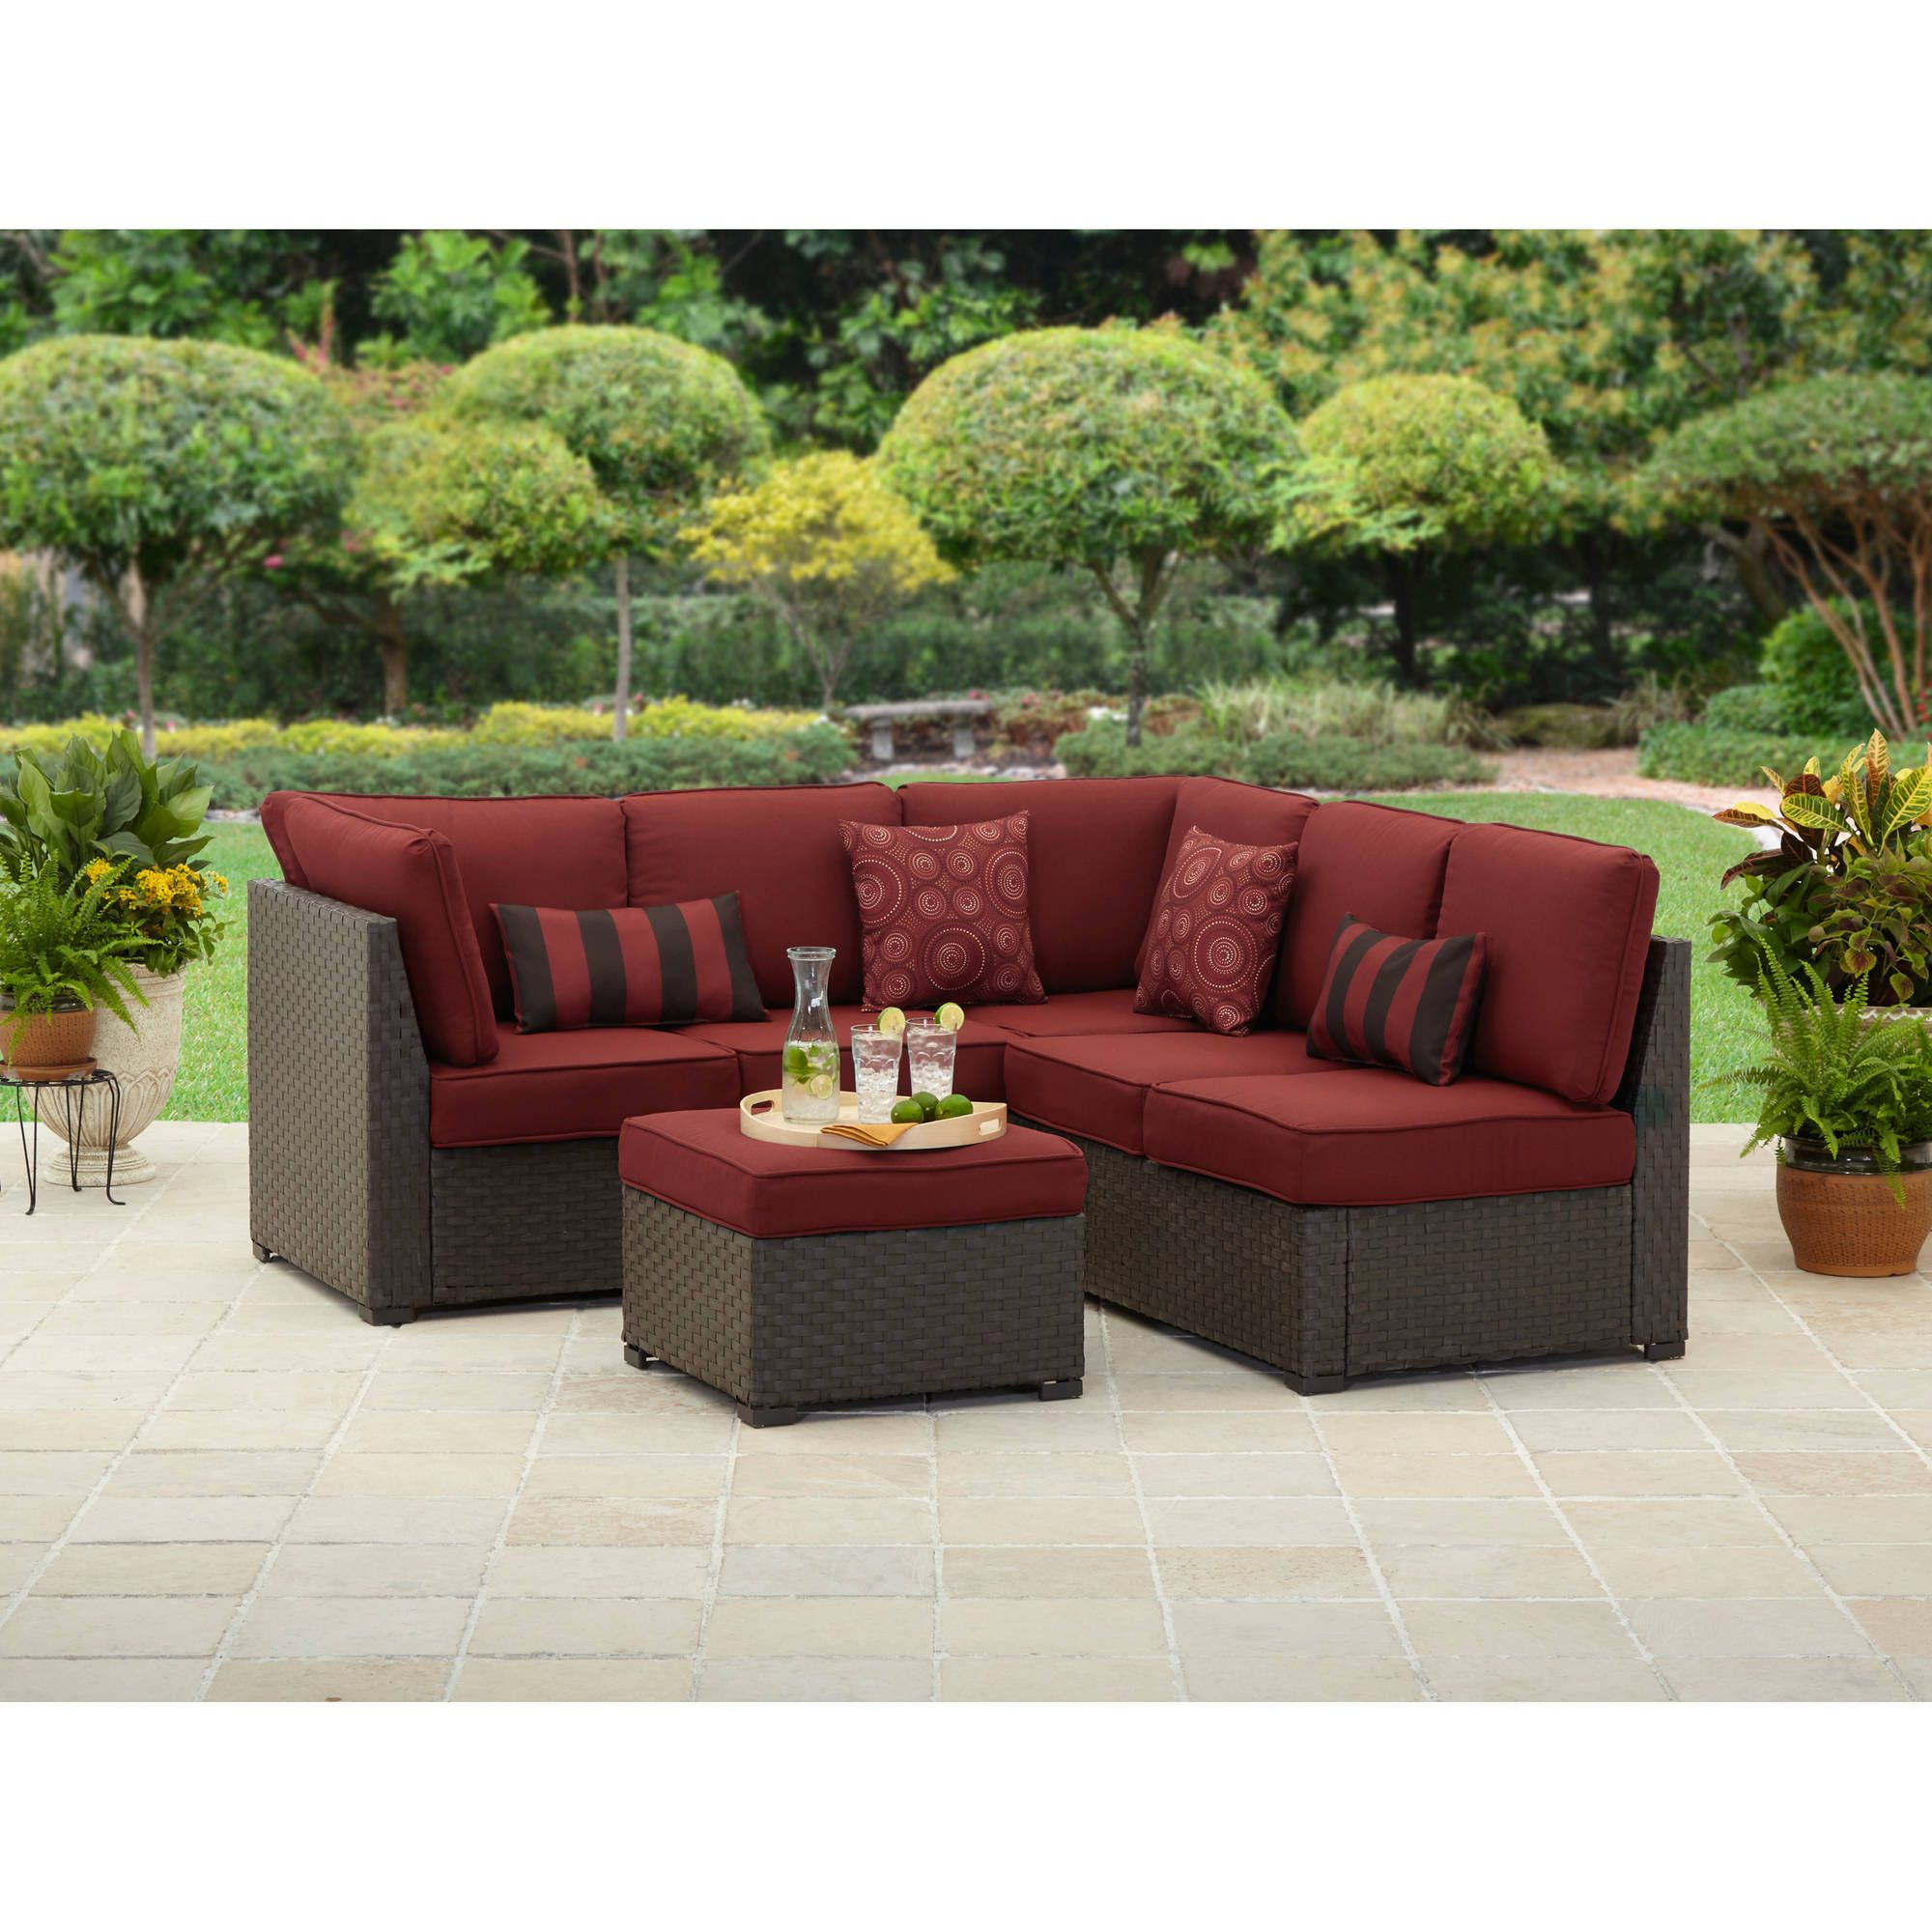 Outdoor Patio Furniture Covers Walmart Best Master Furniture